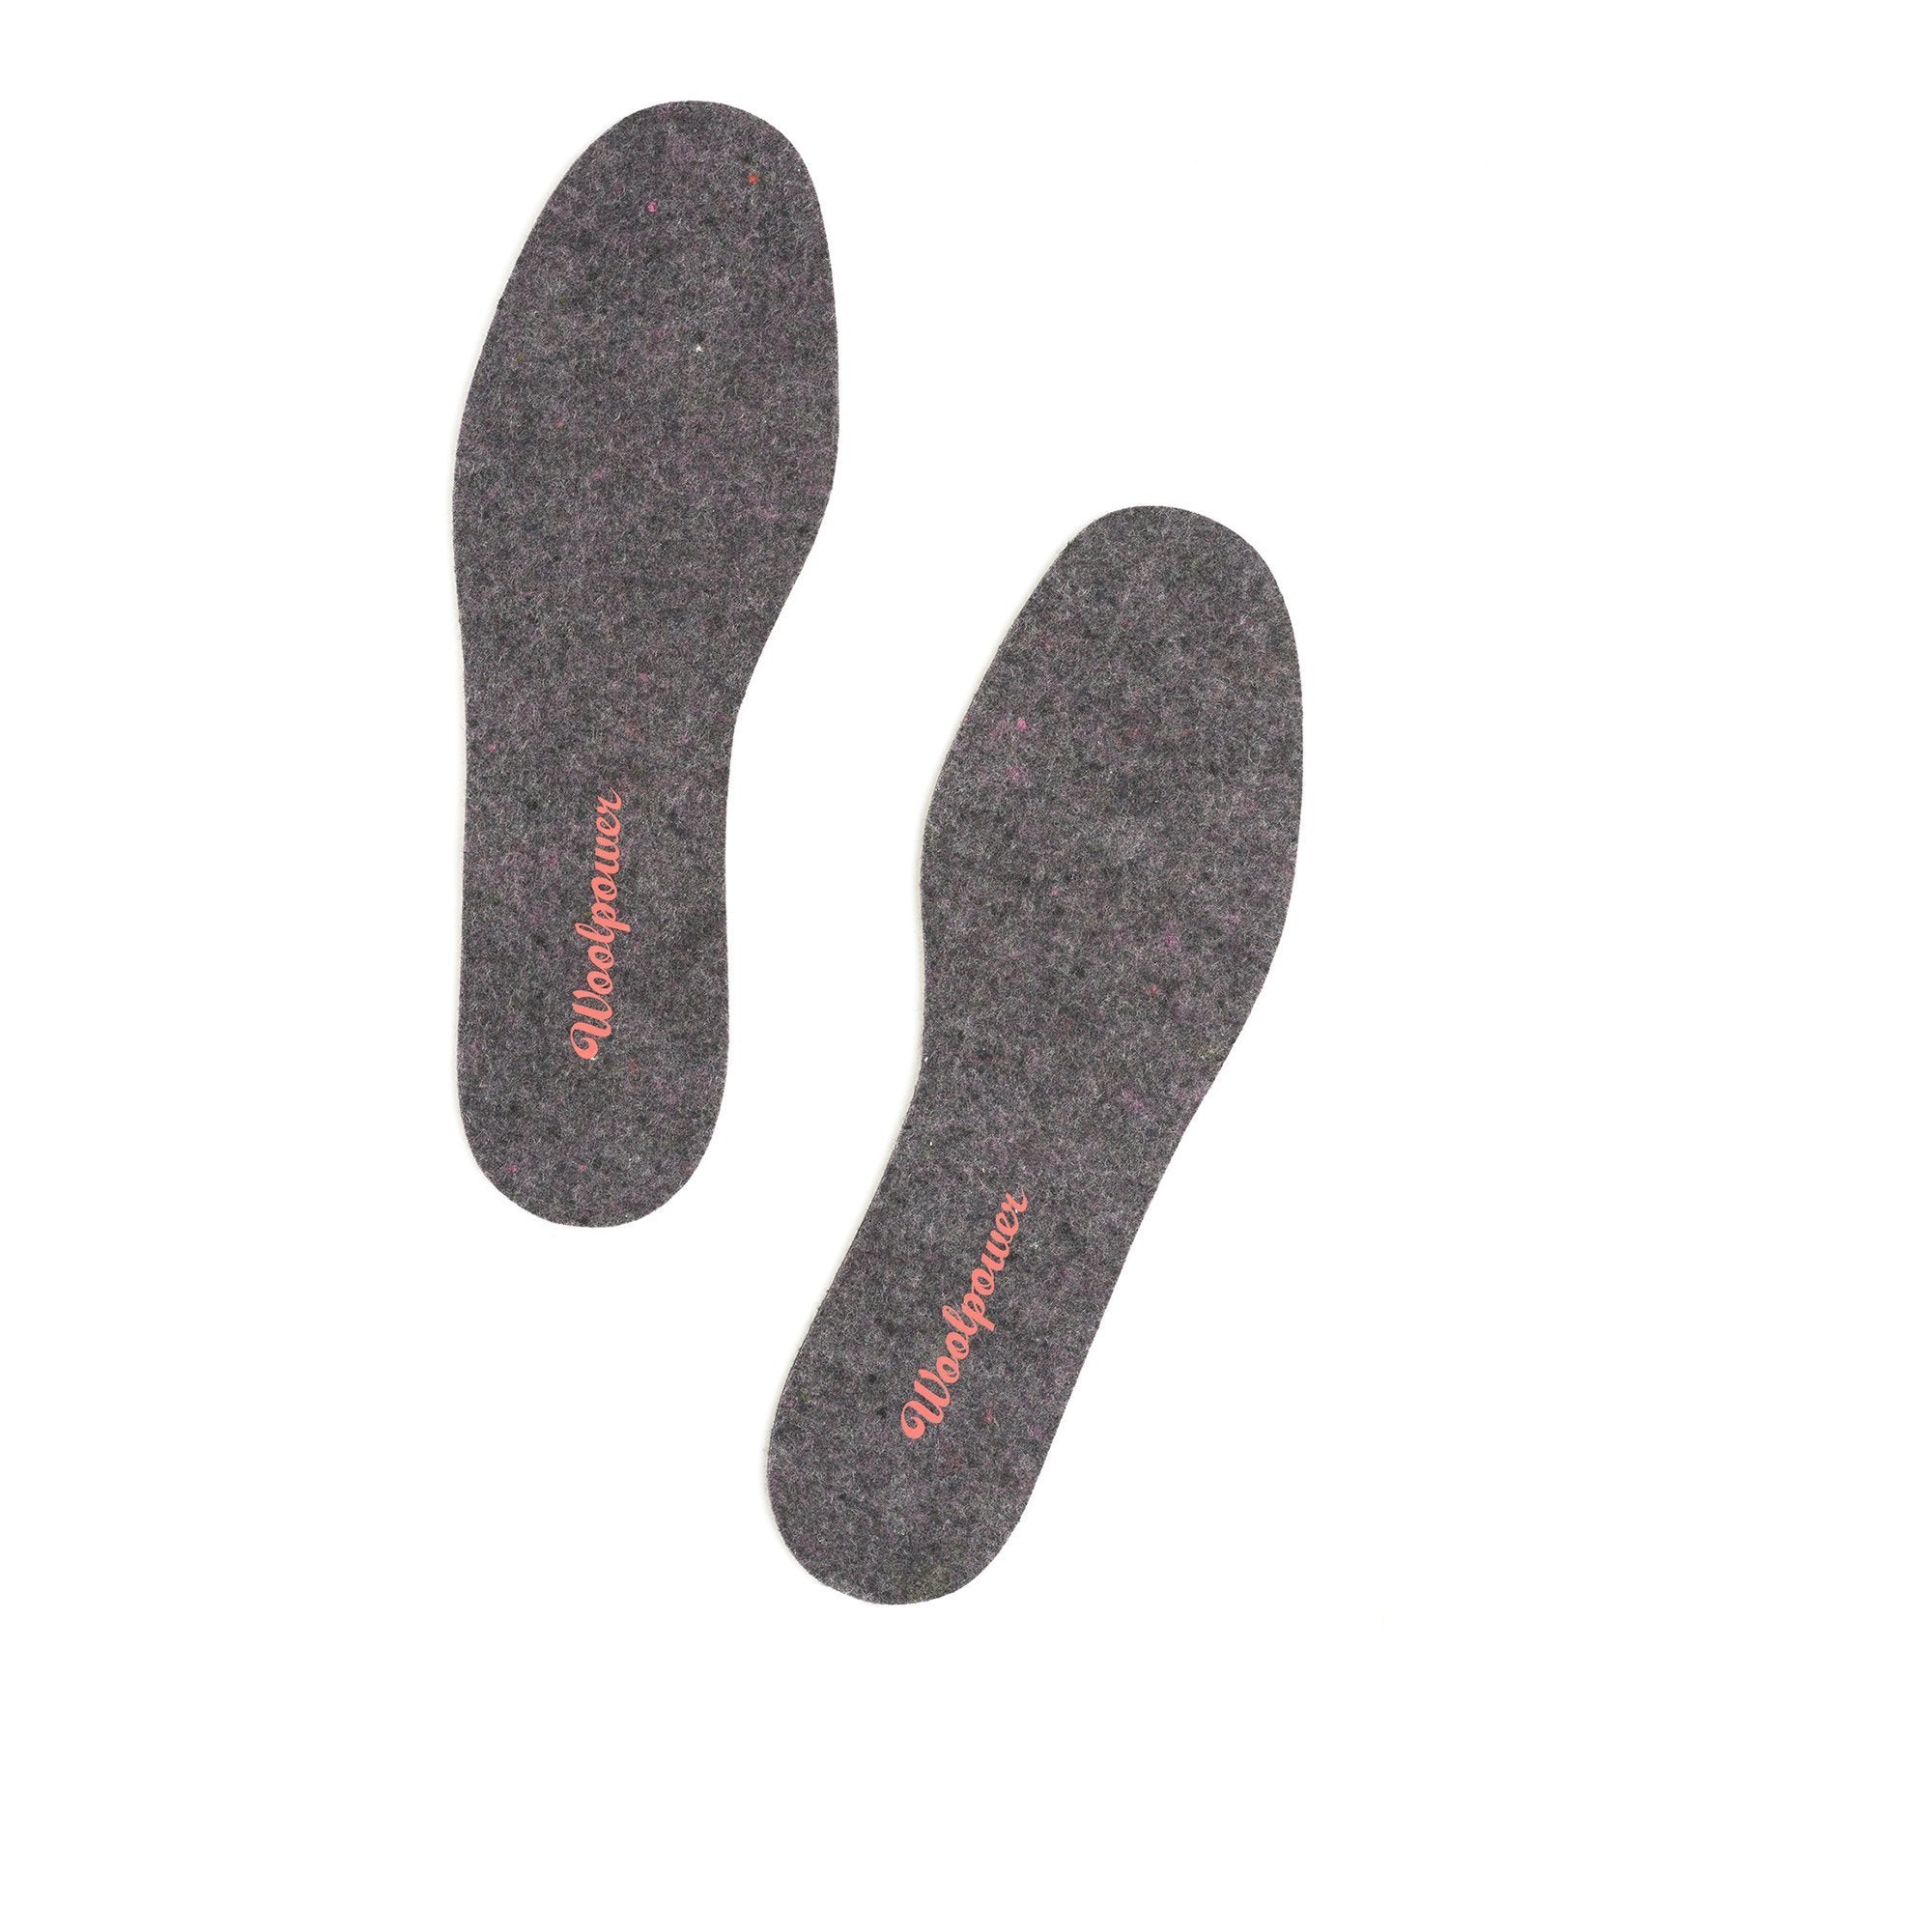 Felt Insoles - Recycled Grey - Unisex - Vindpinad